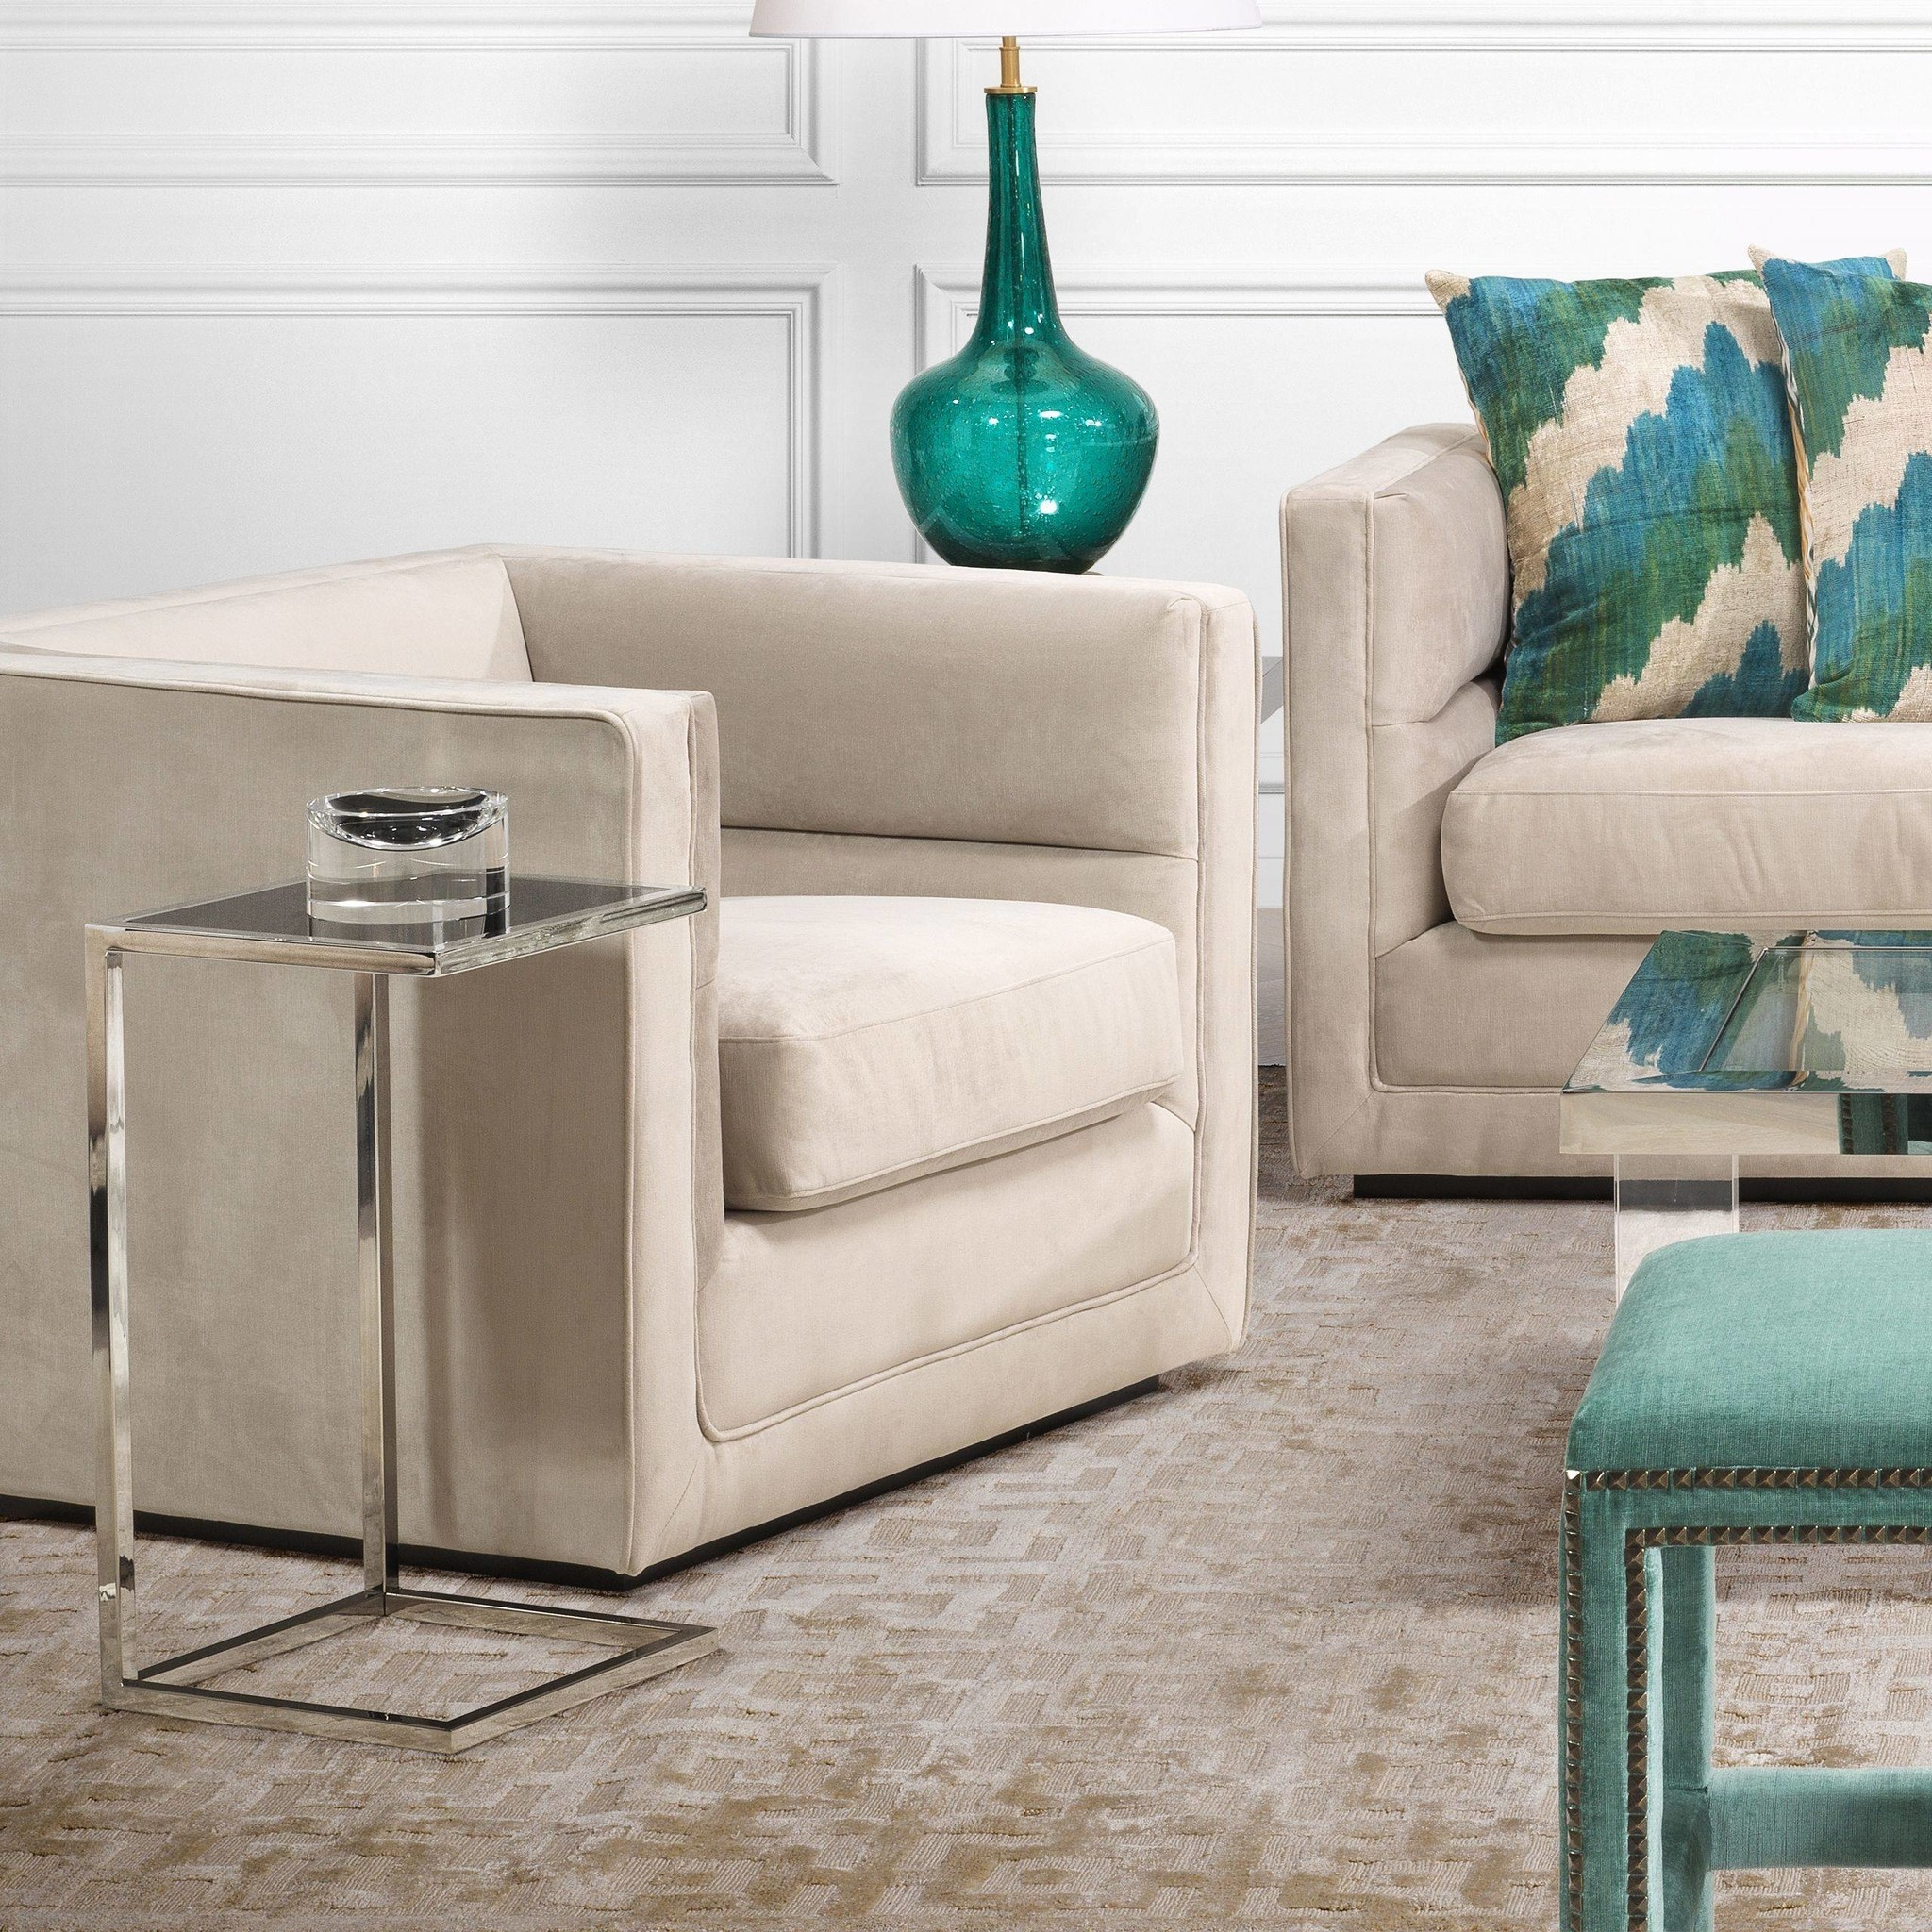 Tall Side Table Wilhelmina Designs, Tall Side Tables Living Room